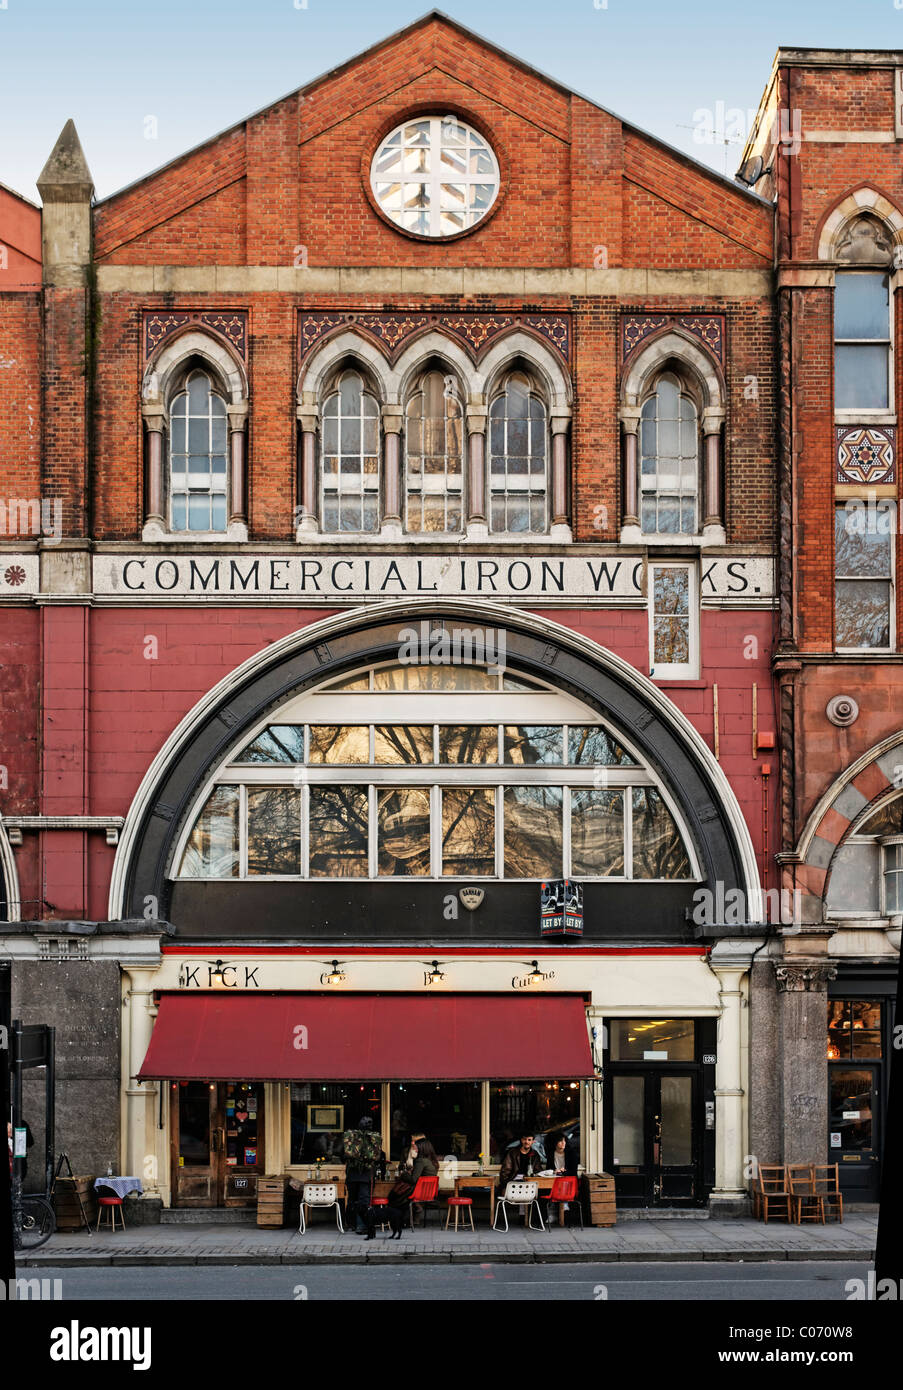 Shoreditch Bars: Kick Bar Shoreditch In The Old Commercial Iron Works